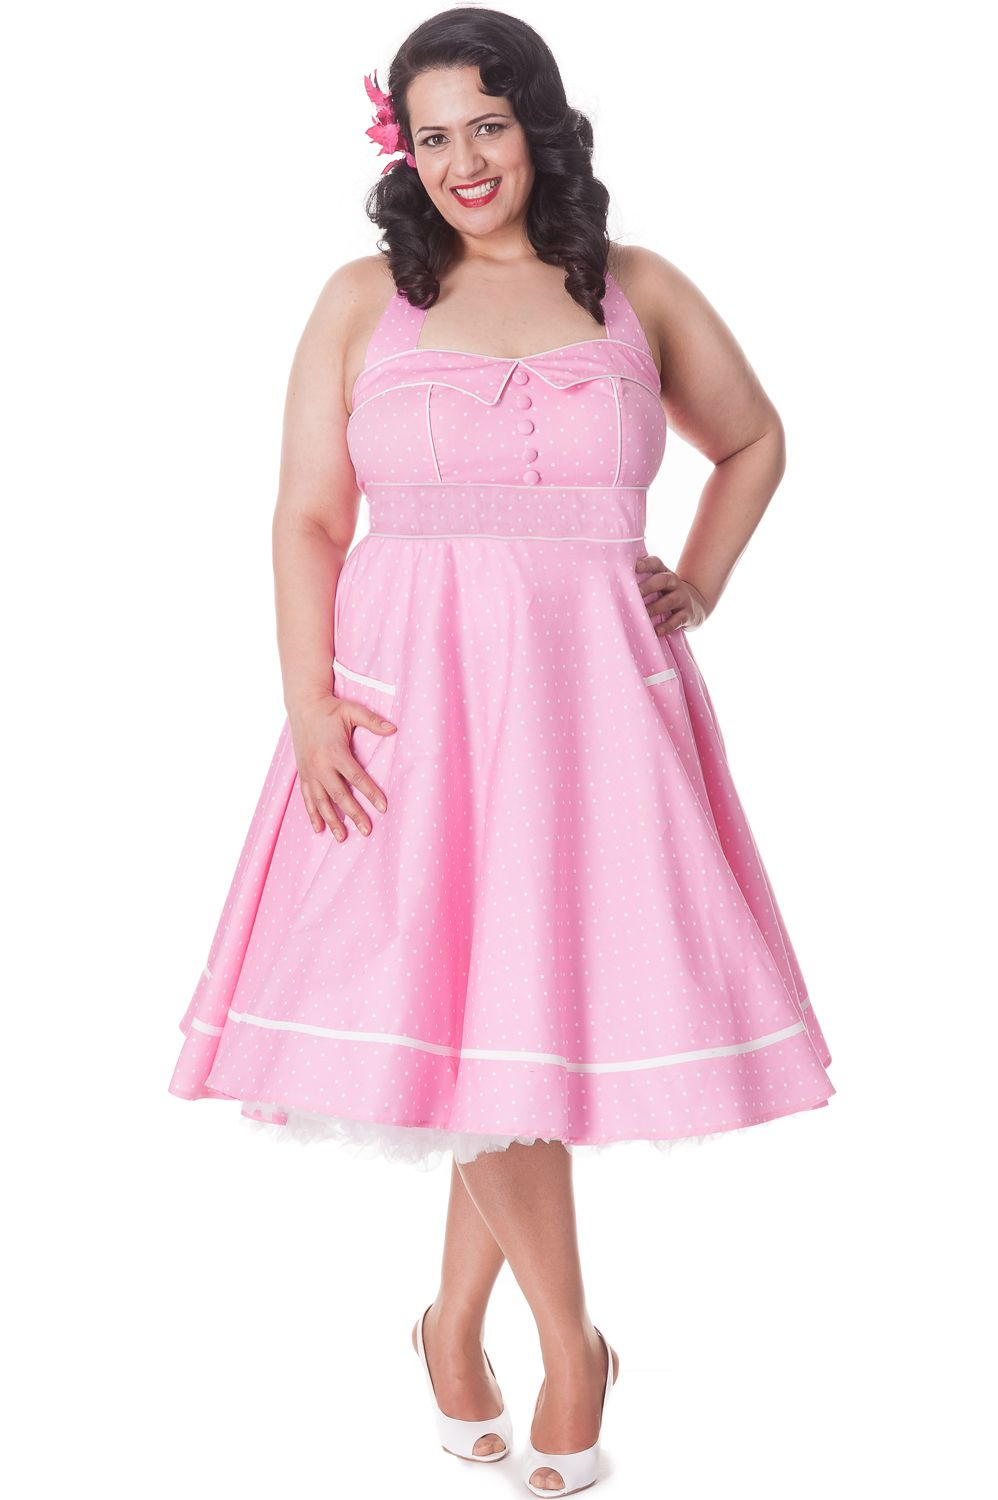 9b09949a28f437 Pink Olivie Polka Dot Swing Dress by Hell Bunny | Pretty In Pink ...